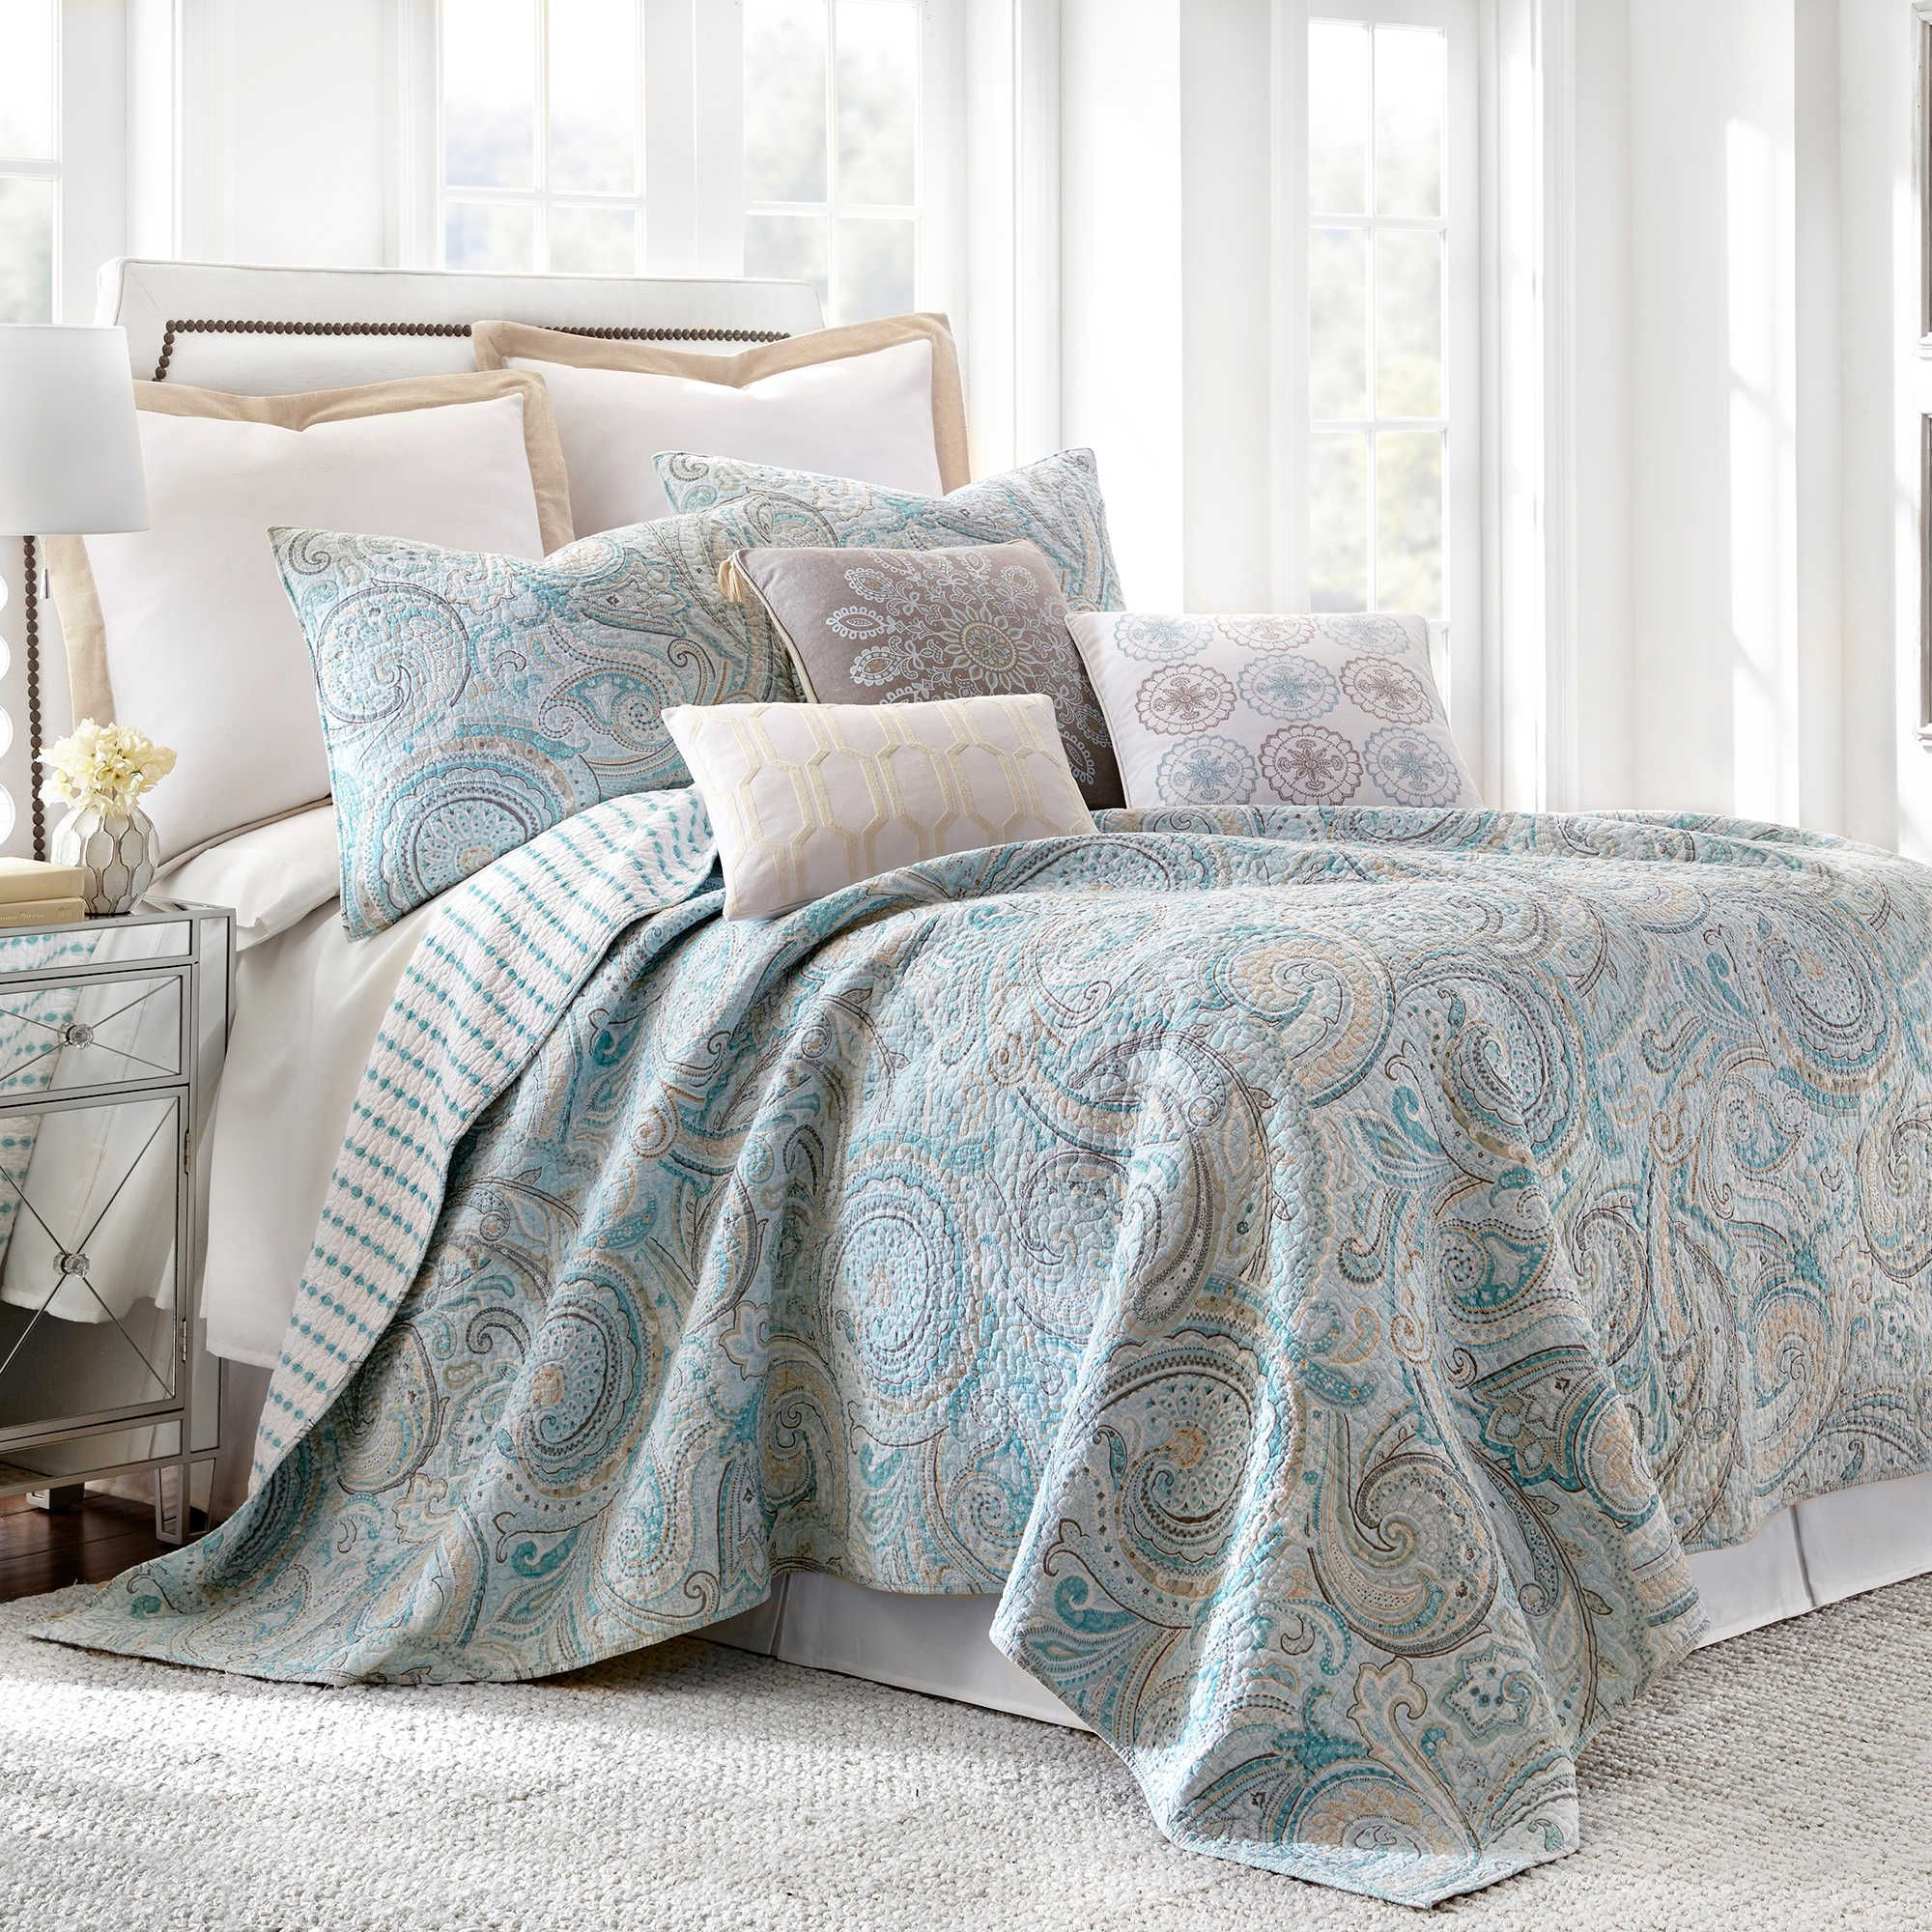 nice Levtex Home Quilt Set Part - 8: $150 Levtex Home Amelie Reversible King Quilt Set in Blue